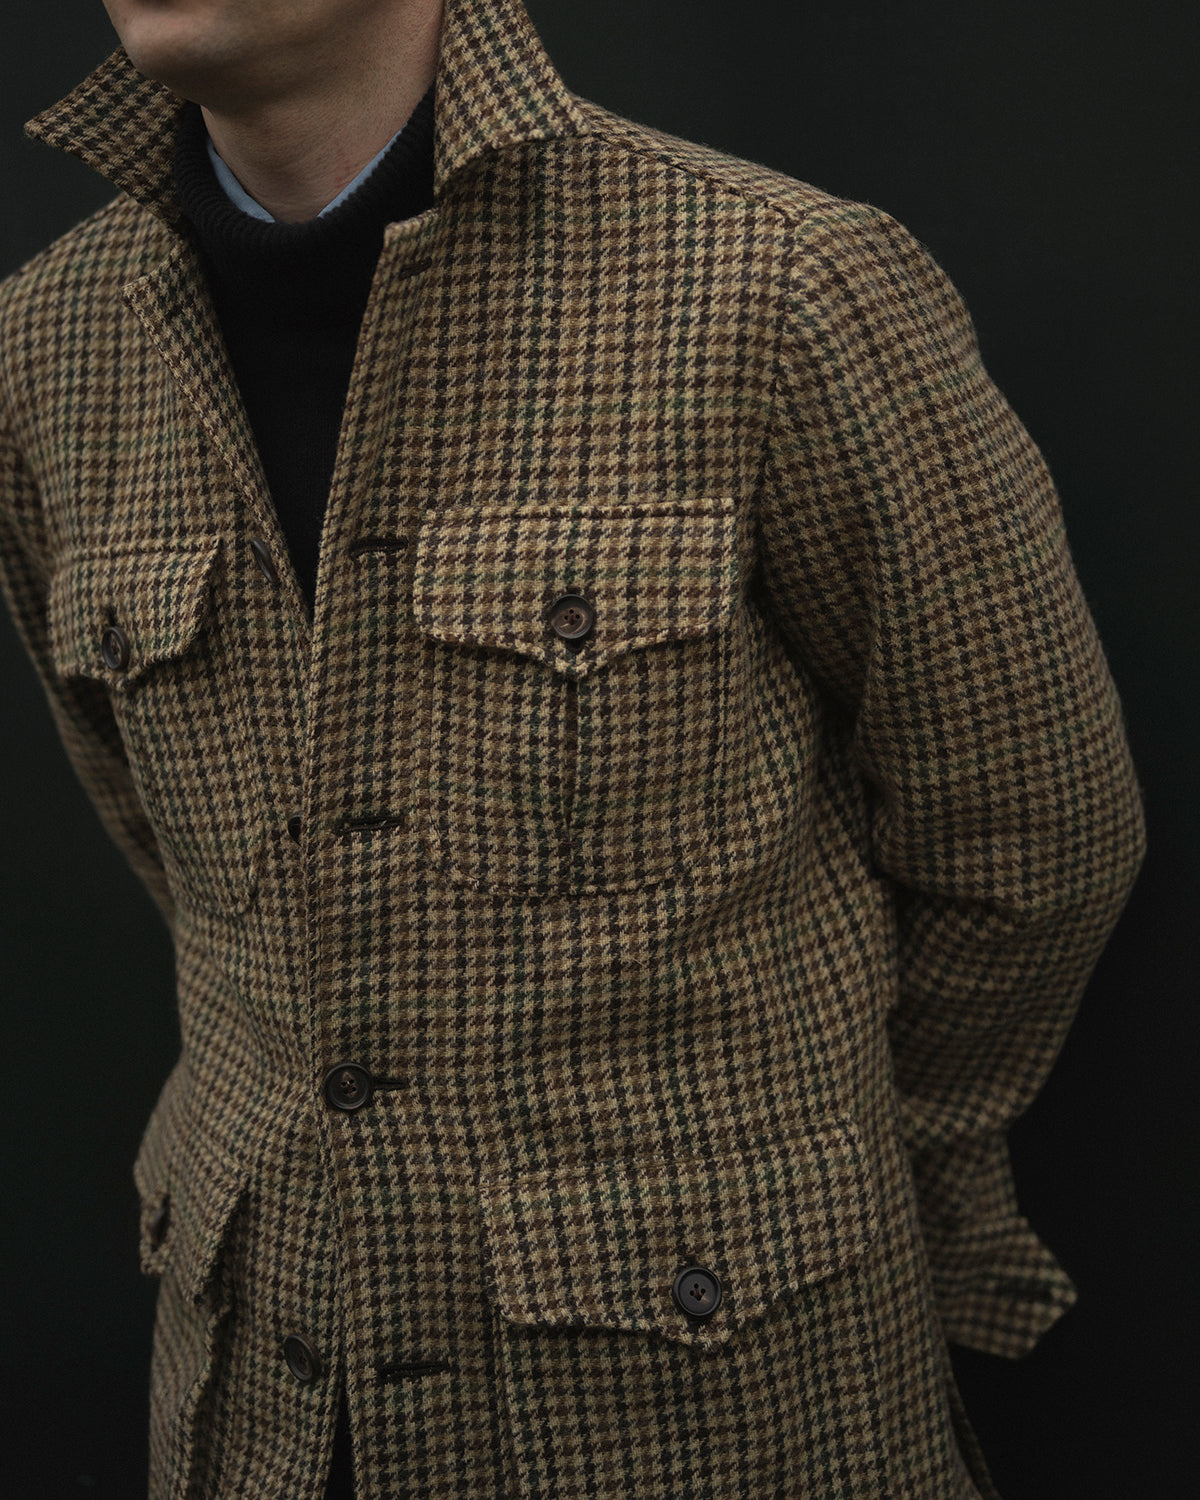 Safari Jacket in brown Gunclub tweed